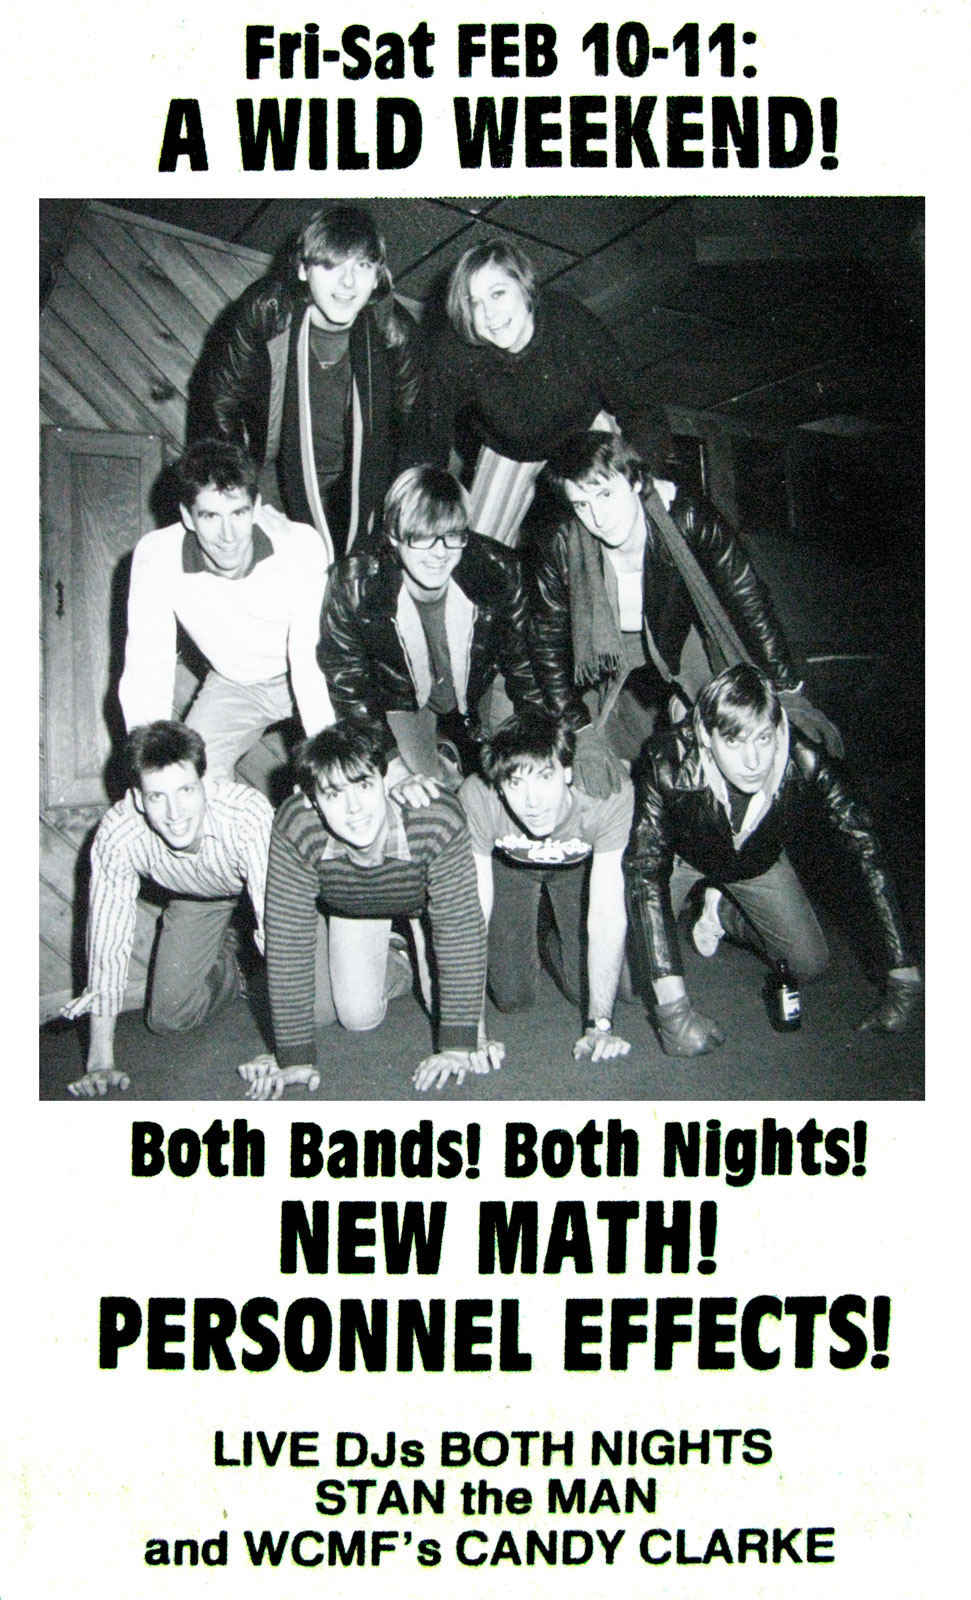 Poster for Personal Effects New Math at Scorgies in Rochester, New York on Friday 02.10.1984 and Saturday 02.11.1984